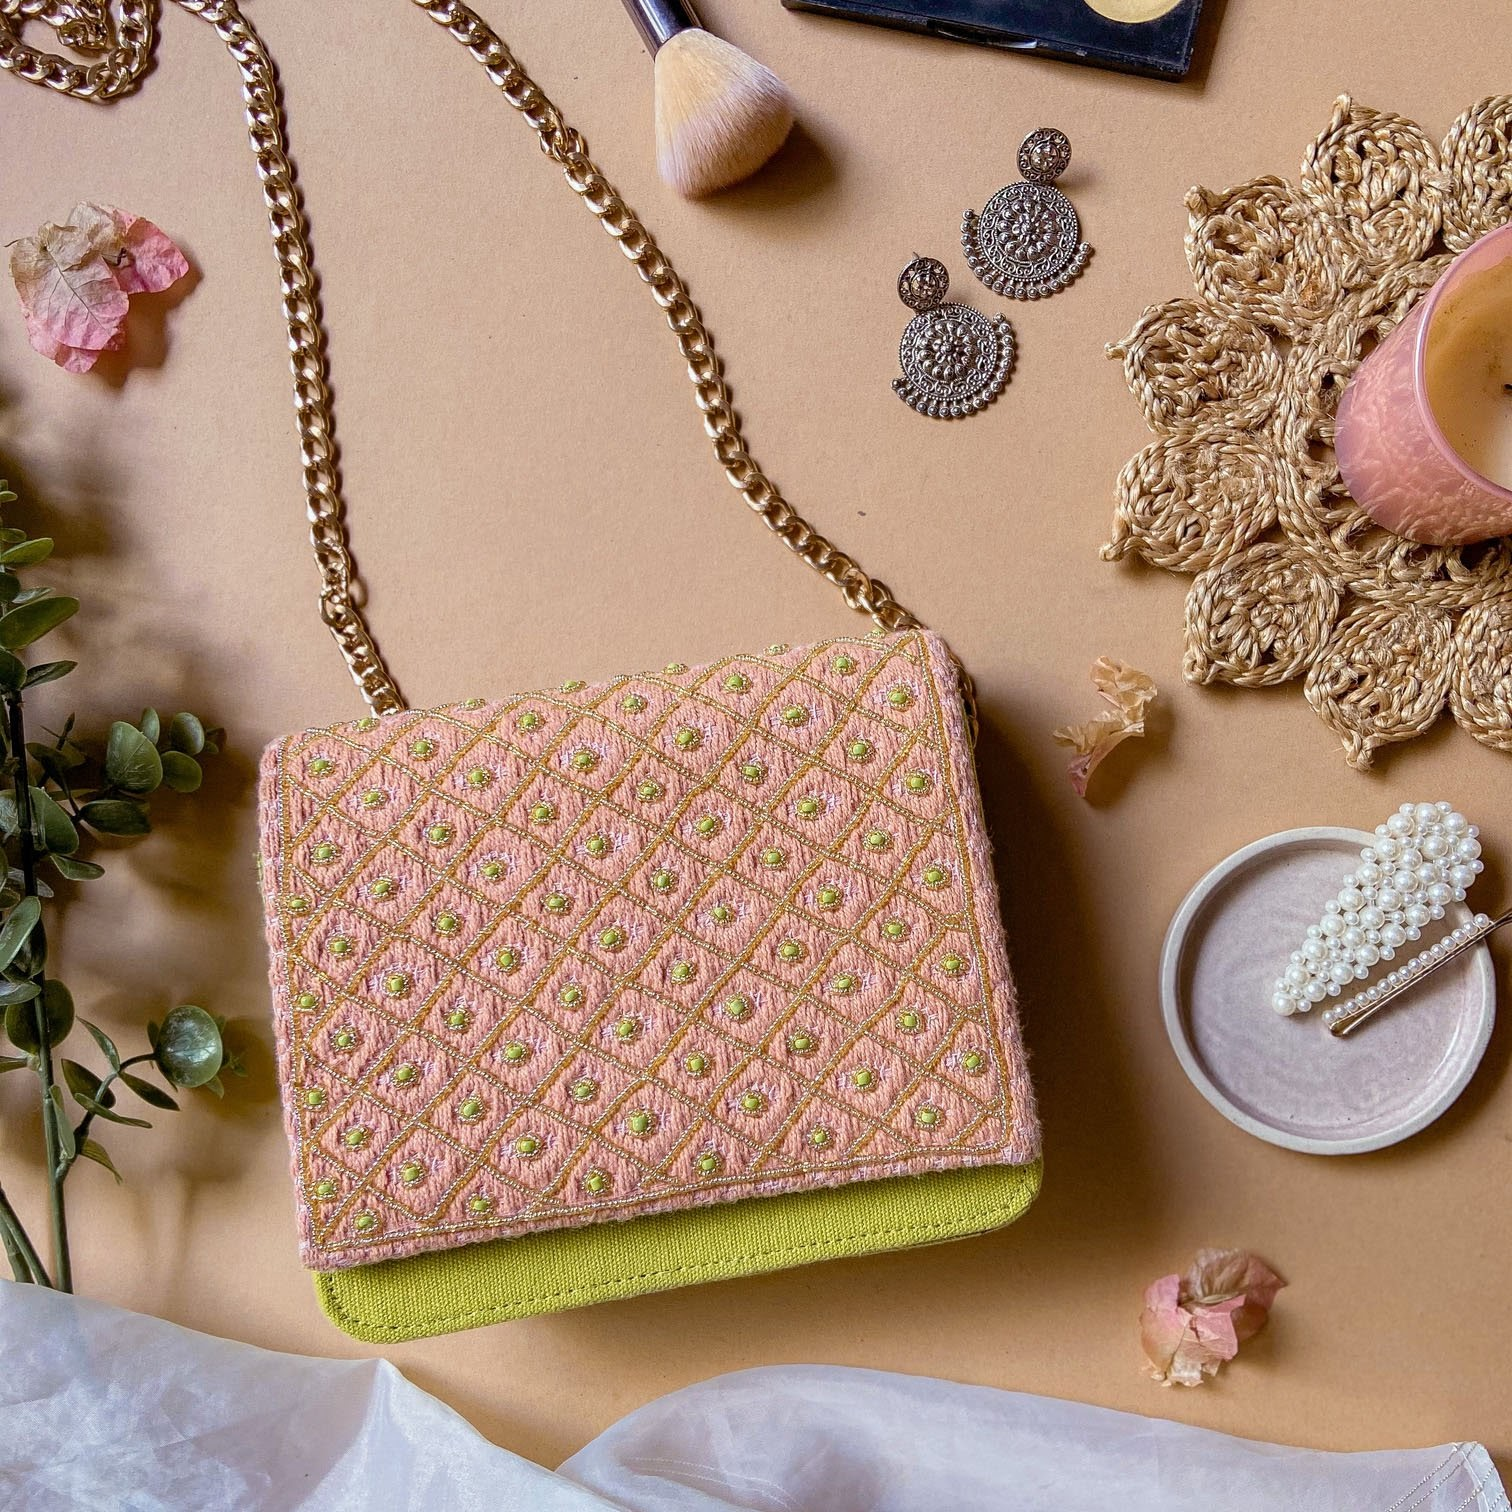 Diwali Lookbook 2021: Accessories You Need to Jazz Up Your OFTD